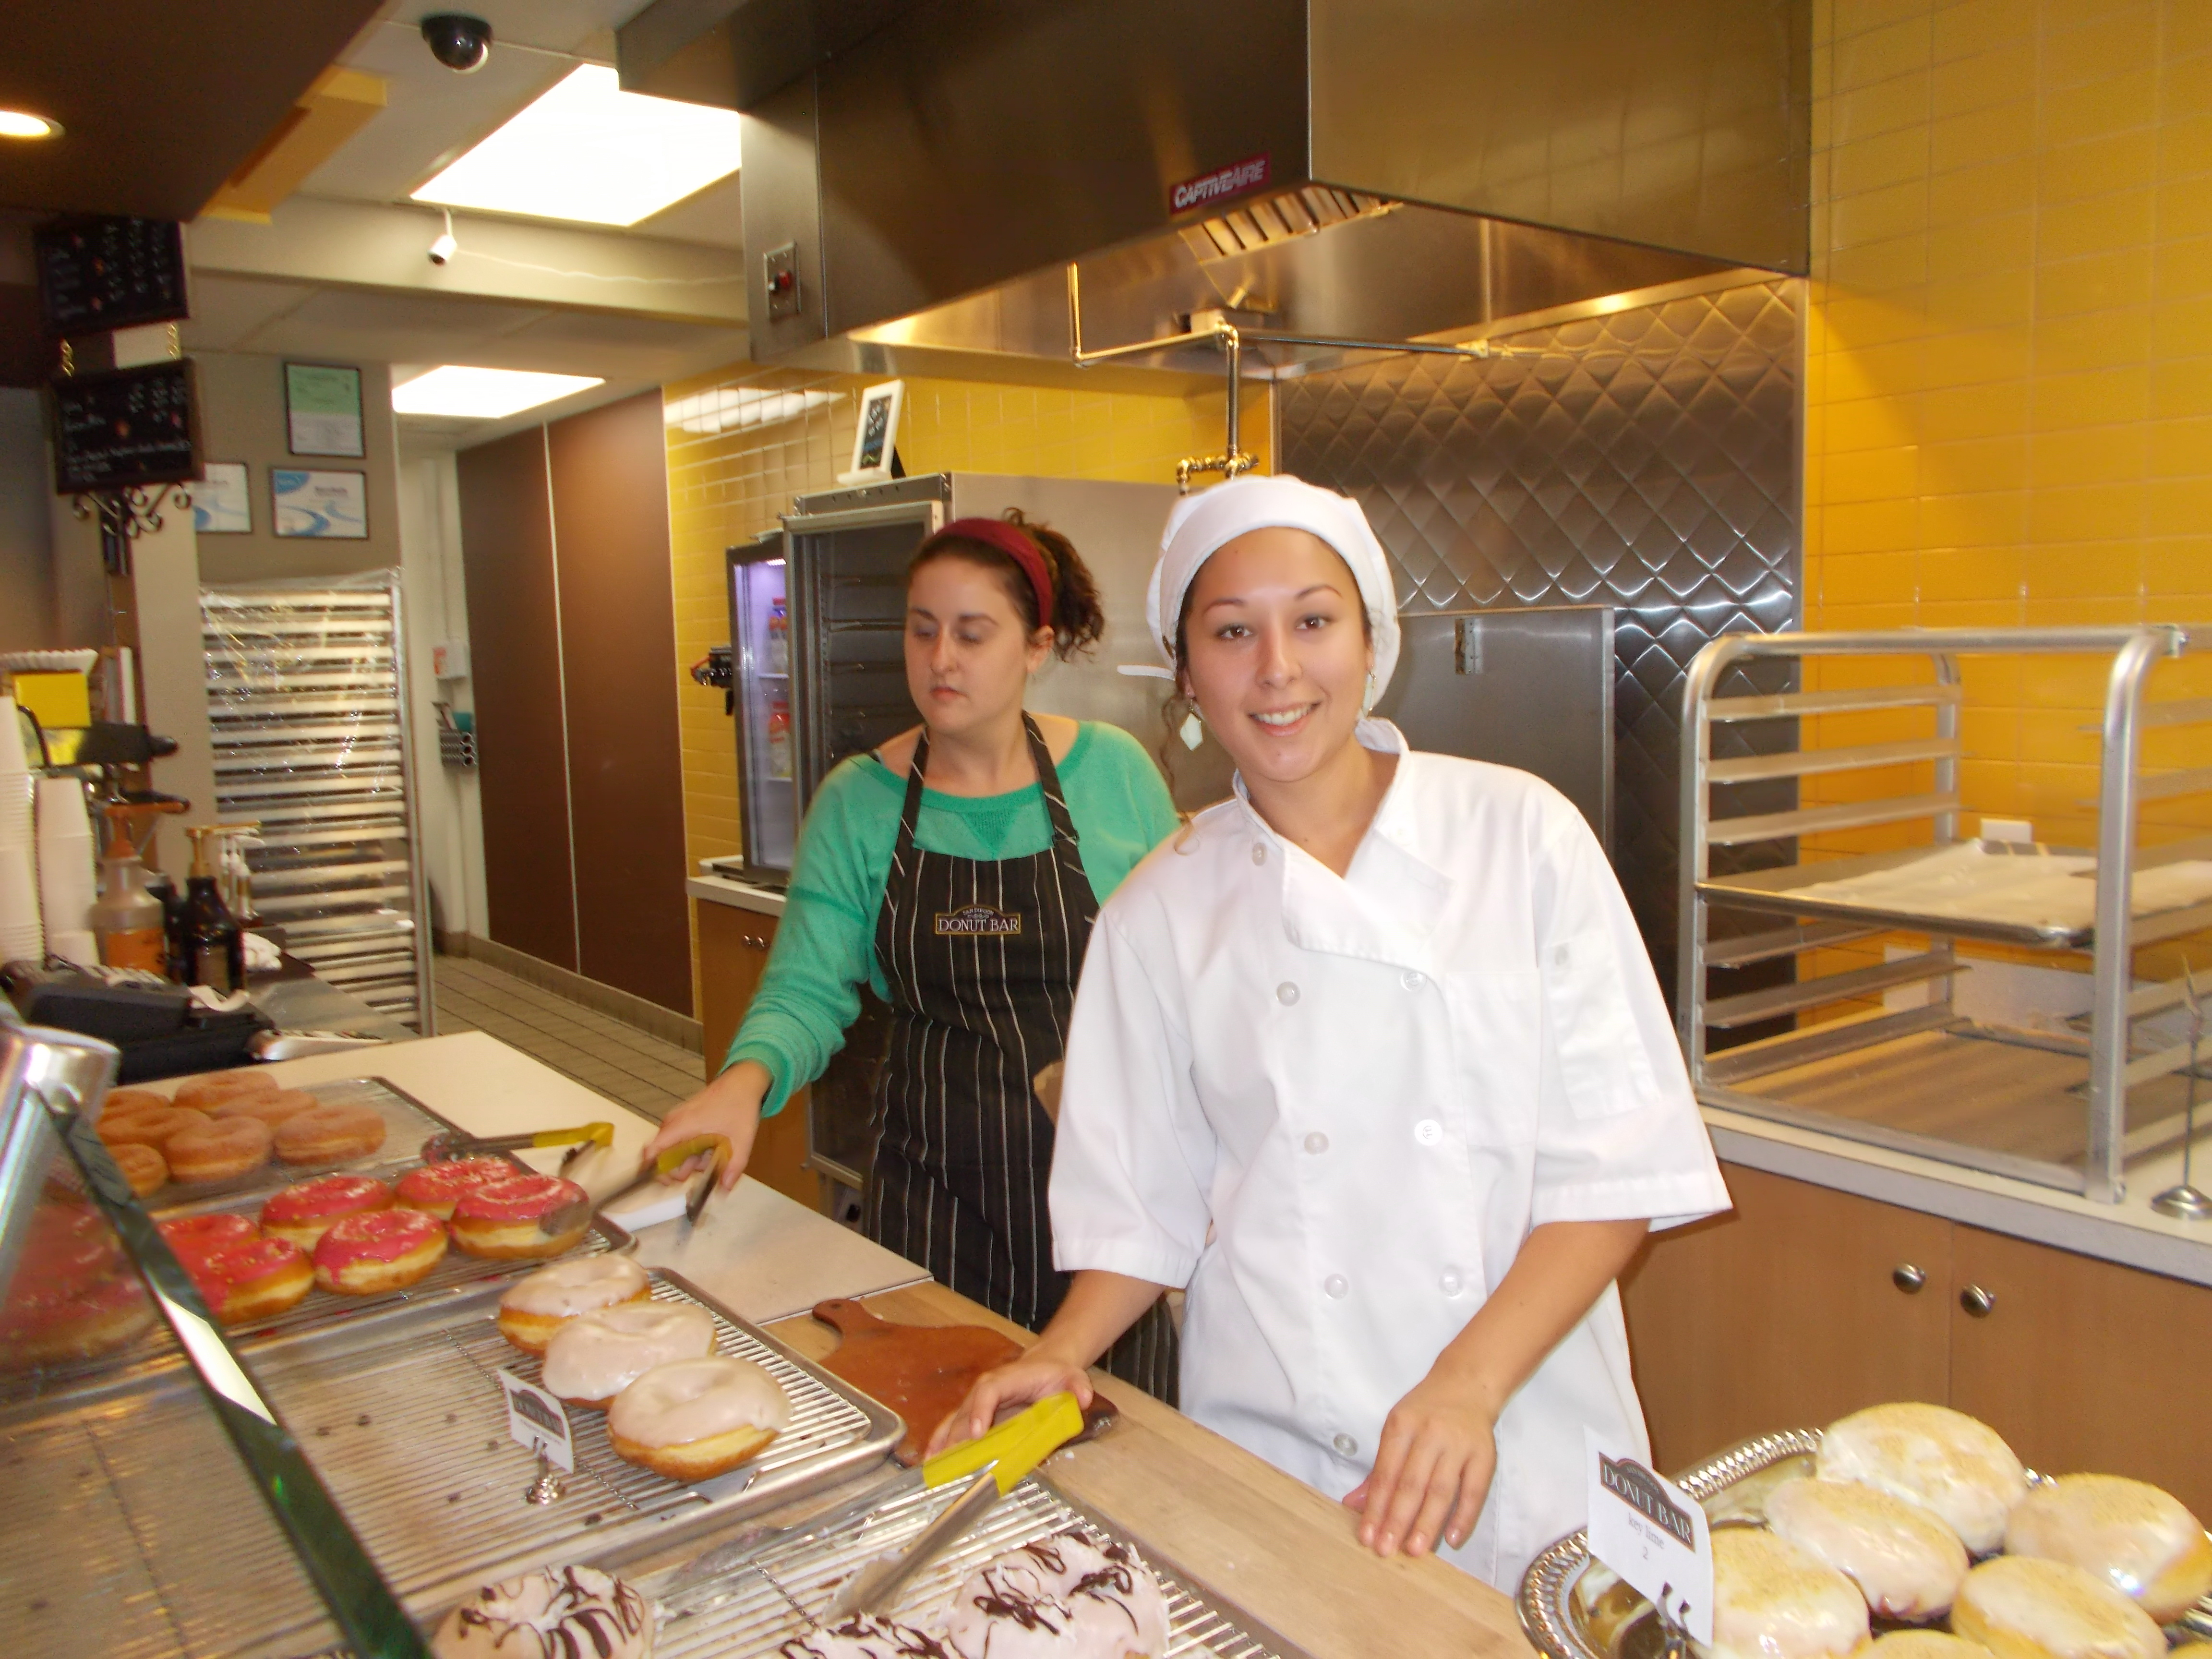 Server Emily and cook Sarai keep the donuts moving